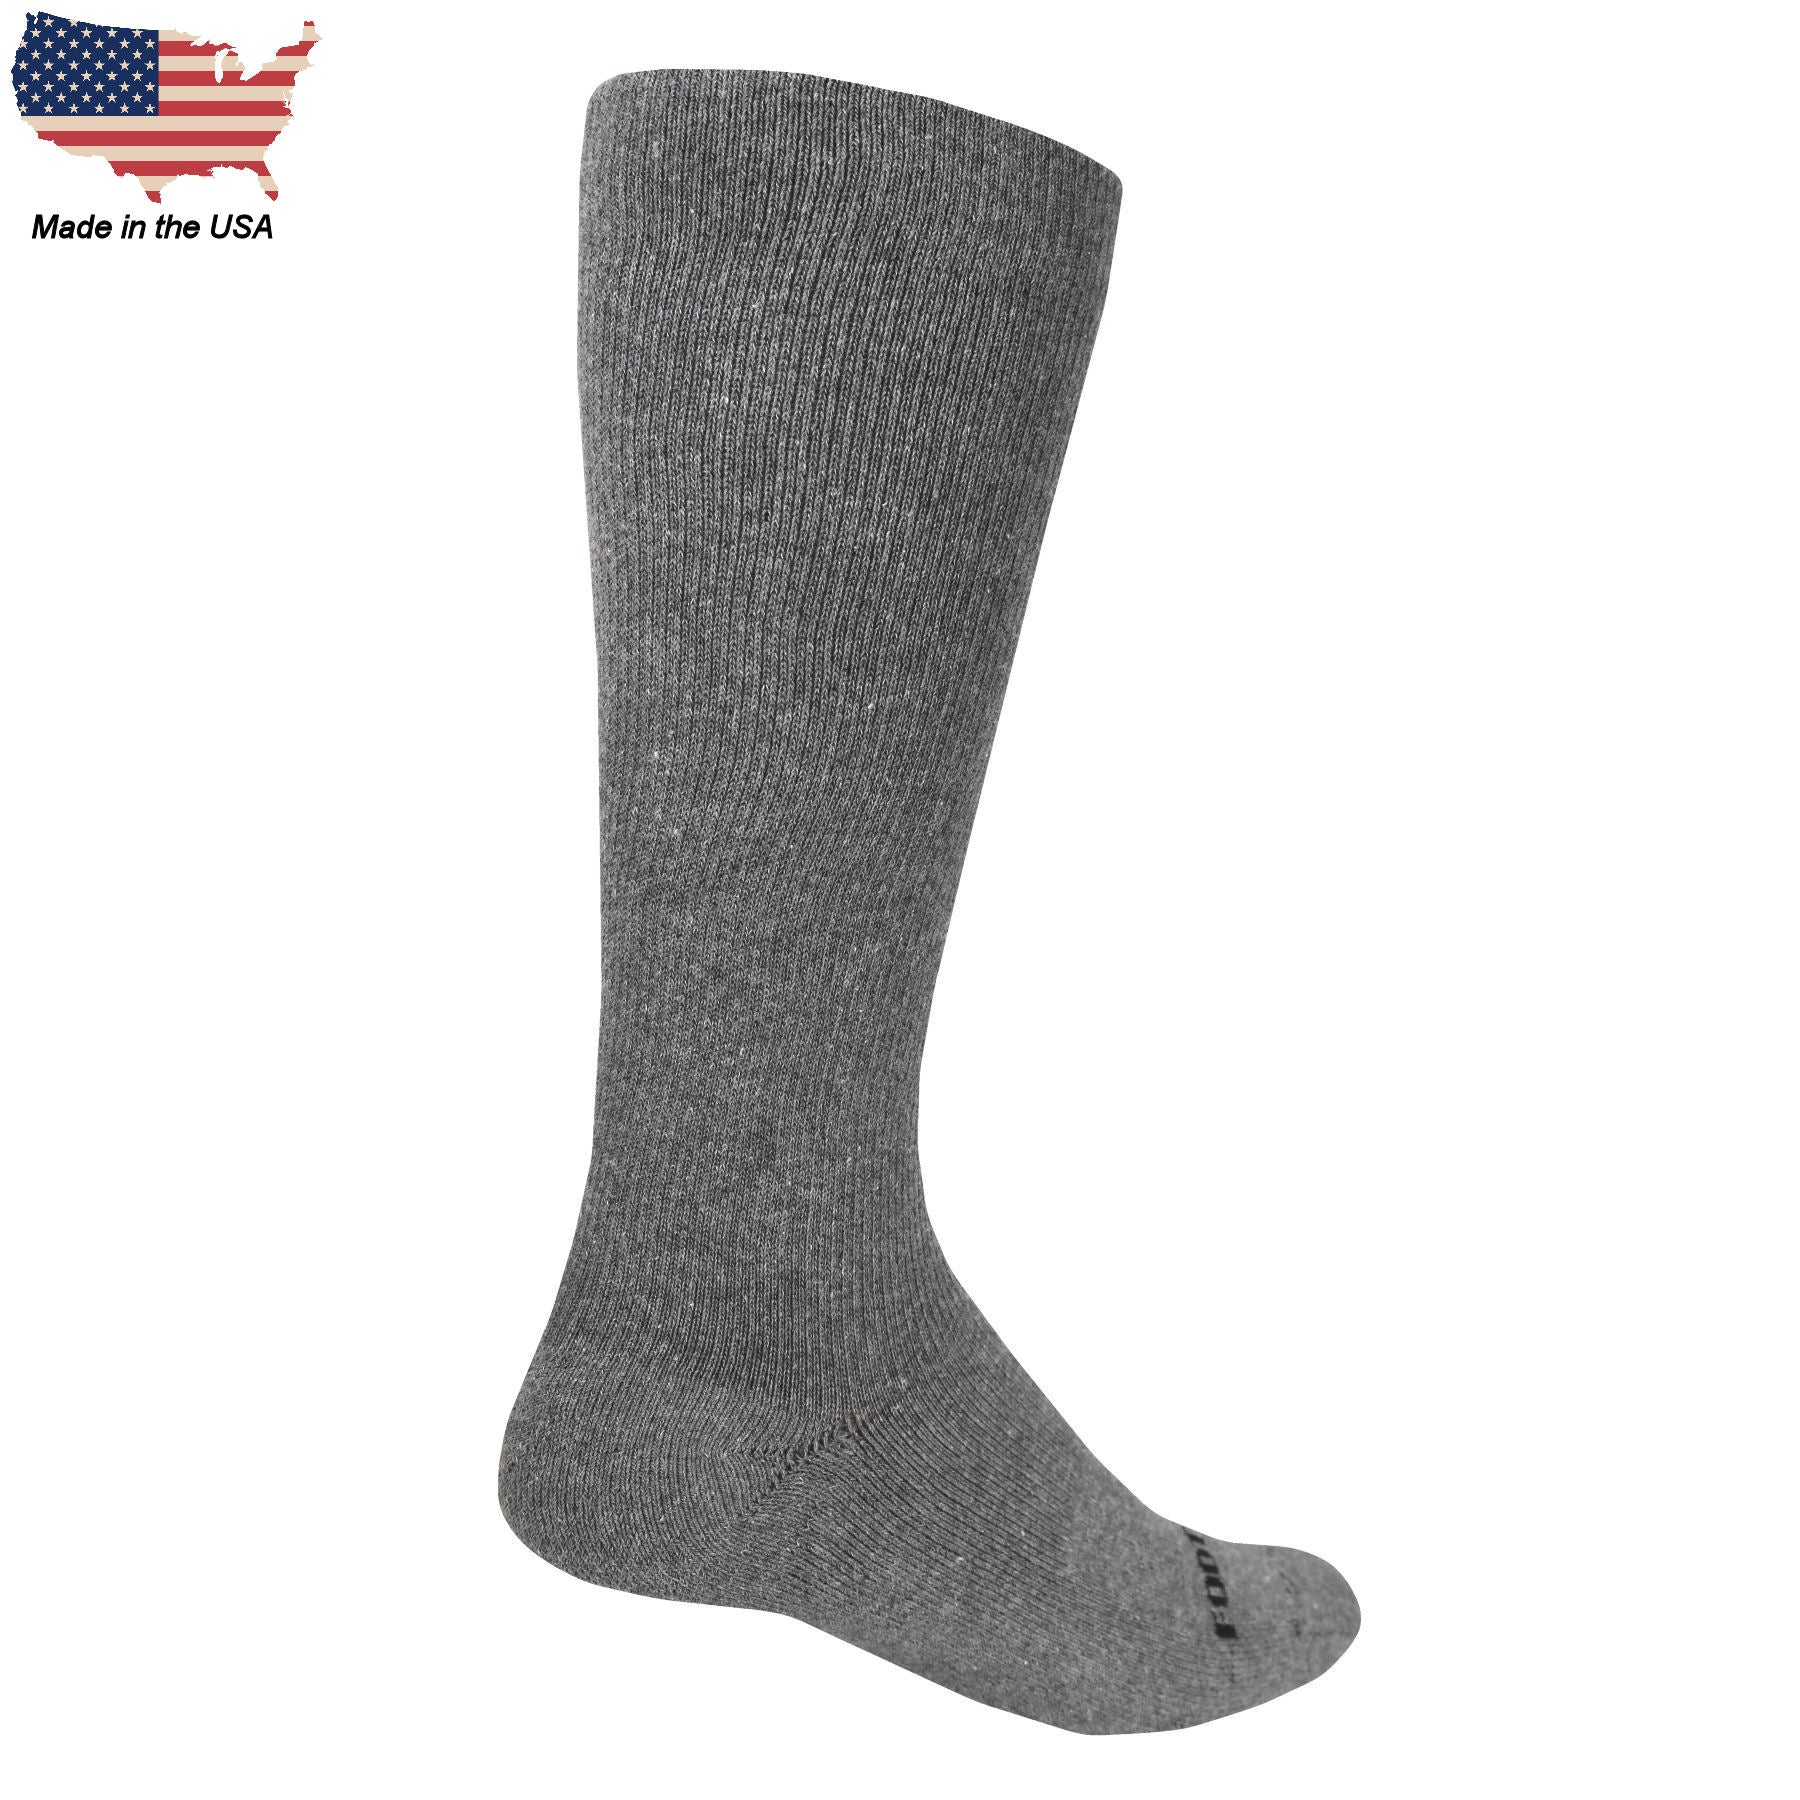 Foot Comfort Graduated Compression Grey OTC Socks